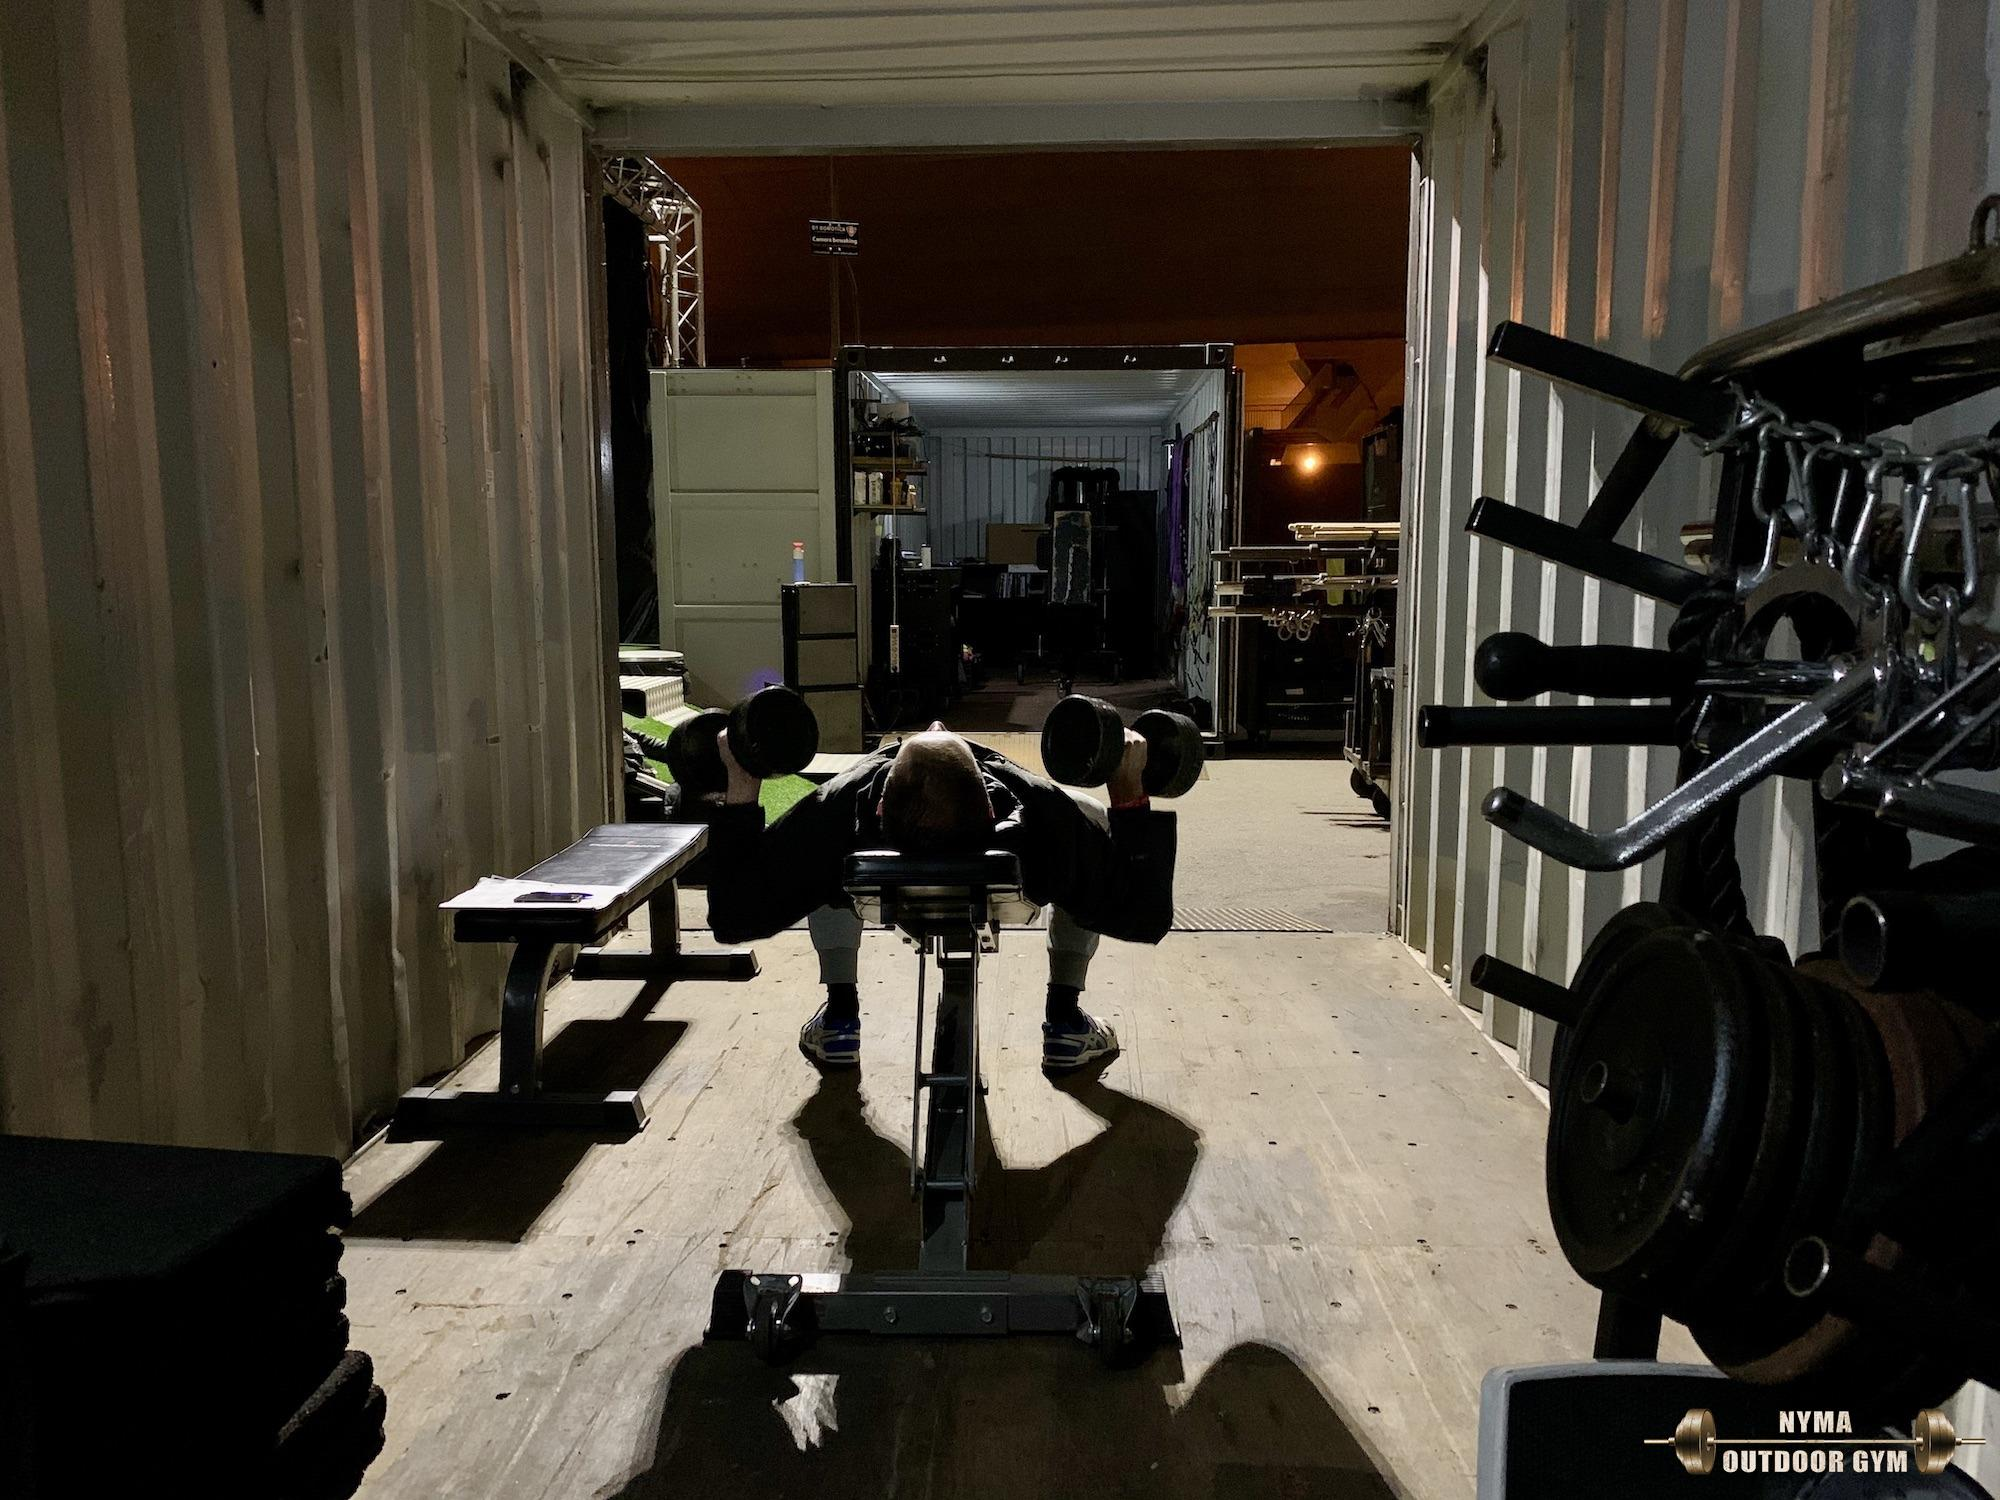 NYMA OUTDOOR GYM 28-01-2020